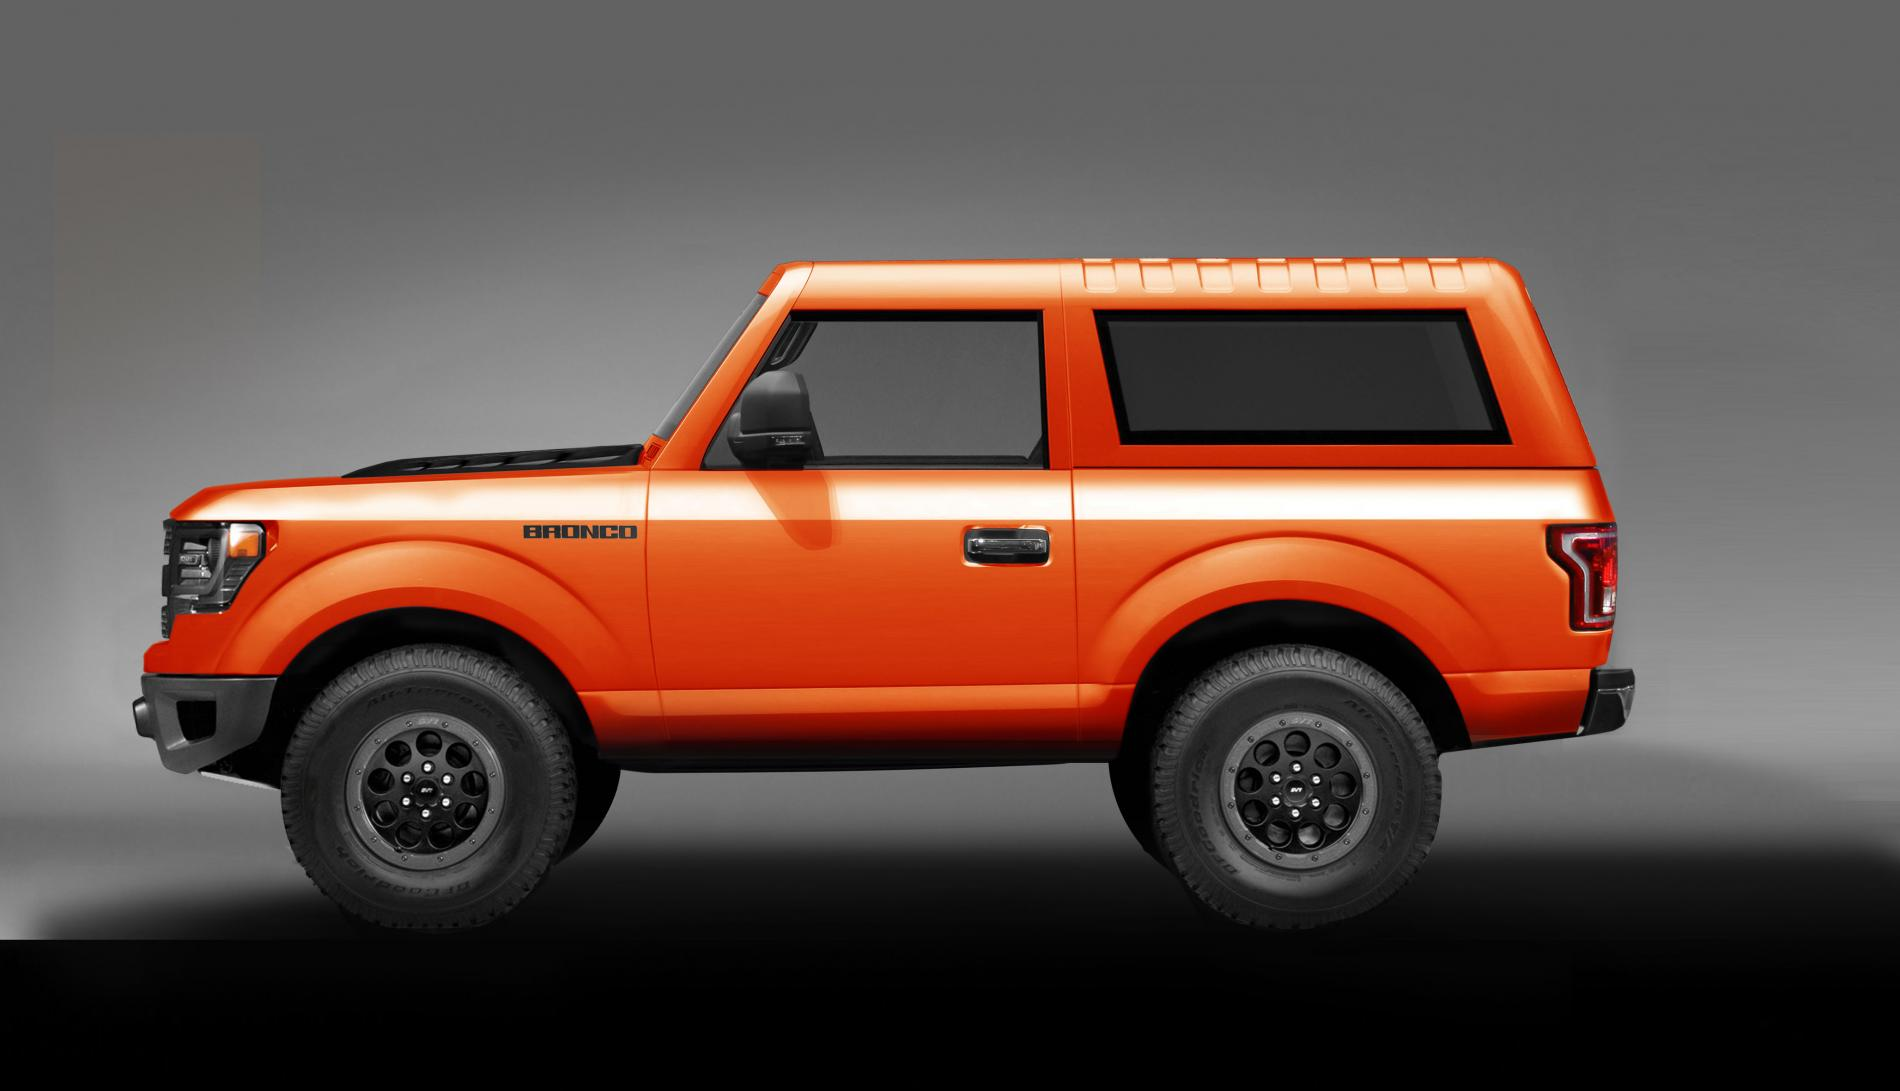 2020 Ford Bronco Concept Rendering